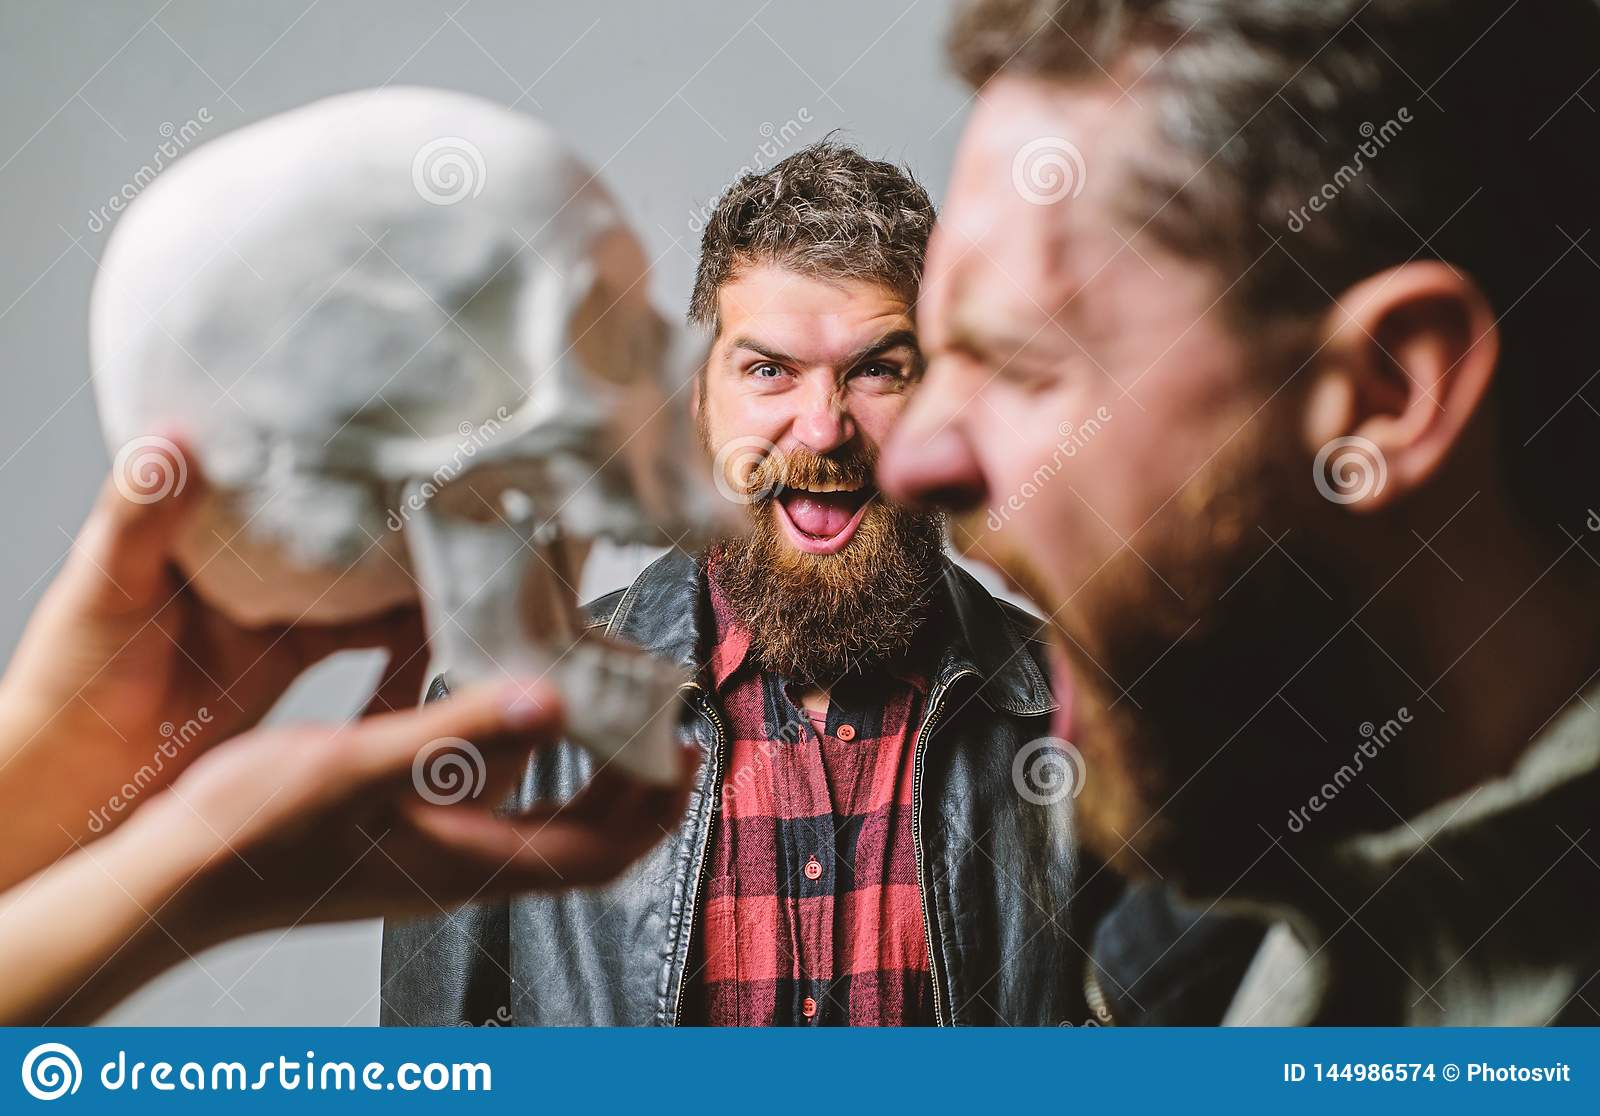 Human fears and courage. Looking deep into eyes of your fear. Man brutal bearded hipster looking at skull symbol of